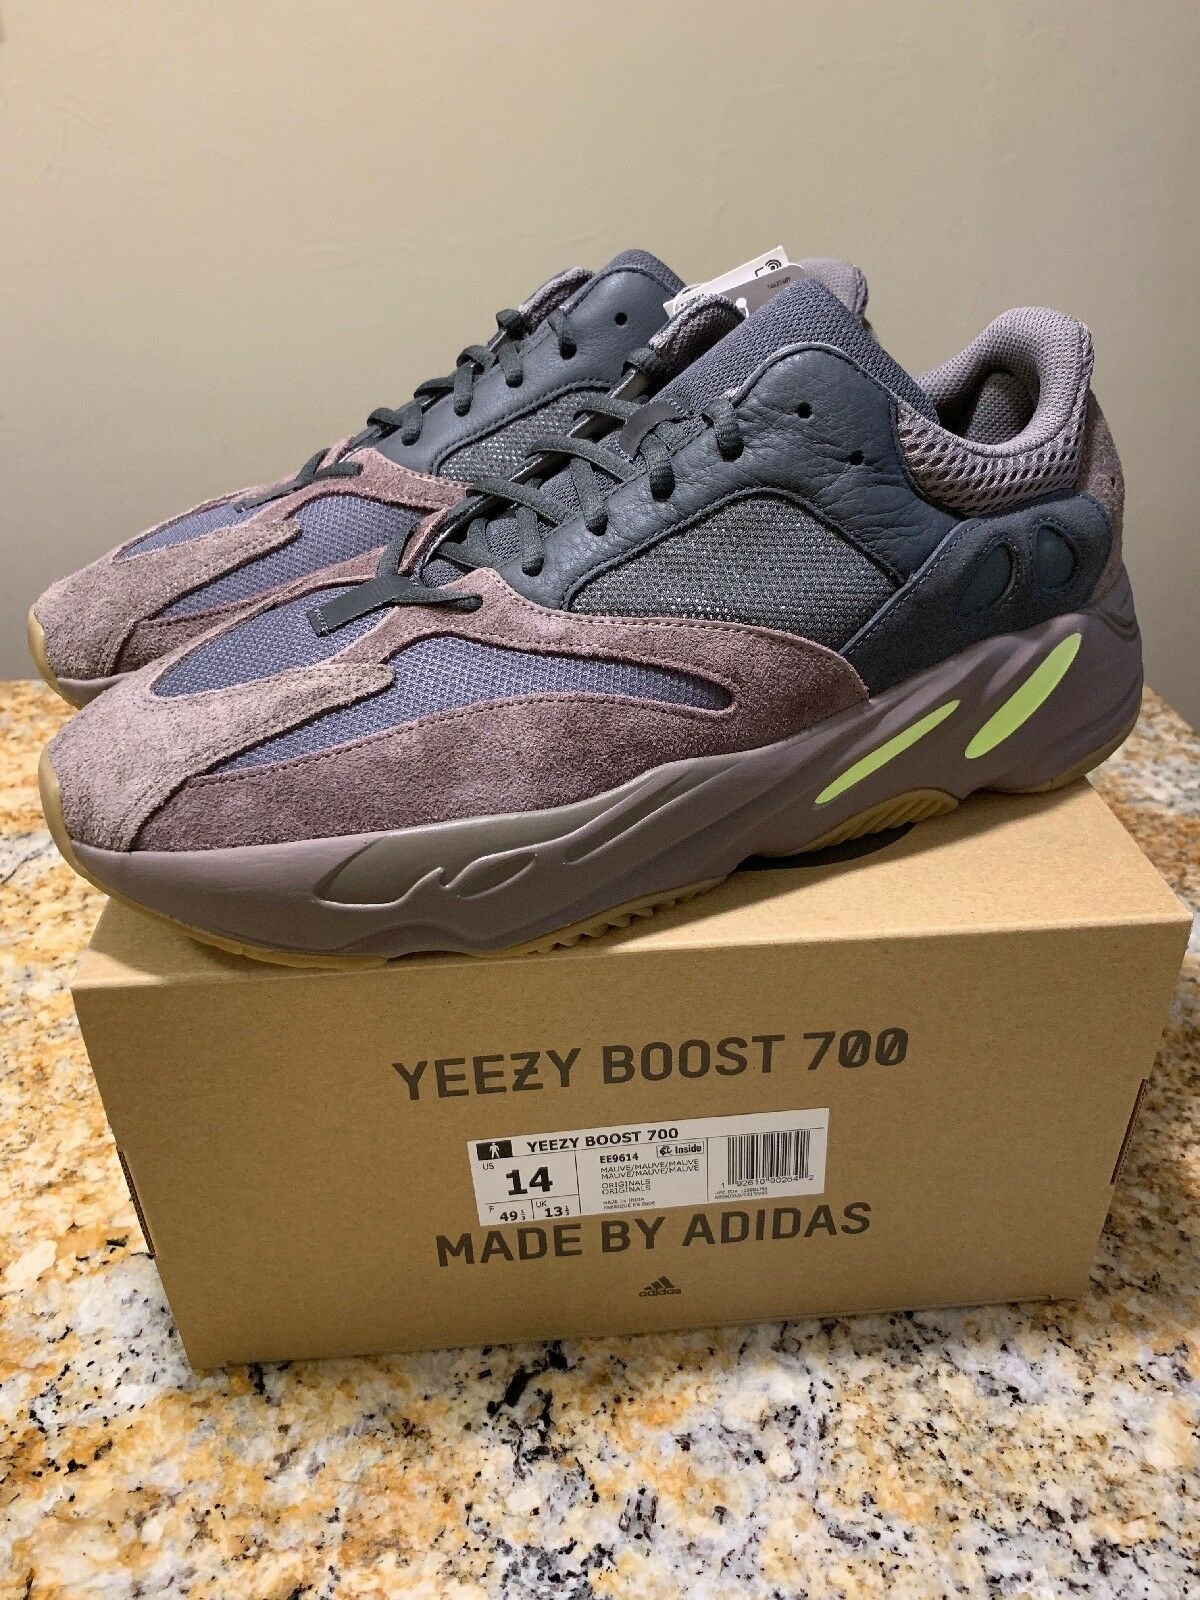 Adidas Yeezy Boost 700 Mauve Size 14 100% Authentic from Adidas